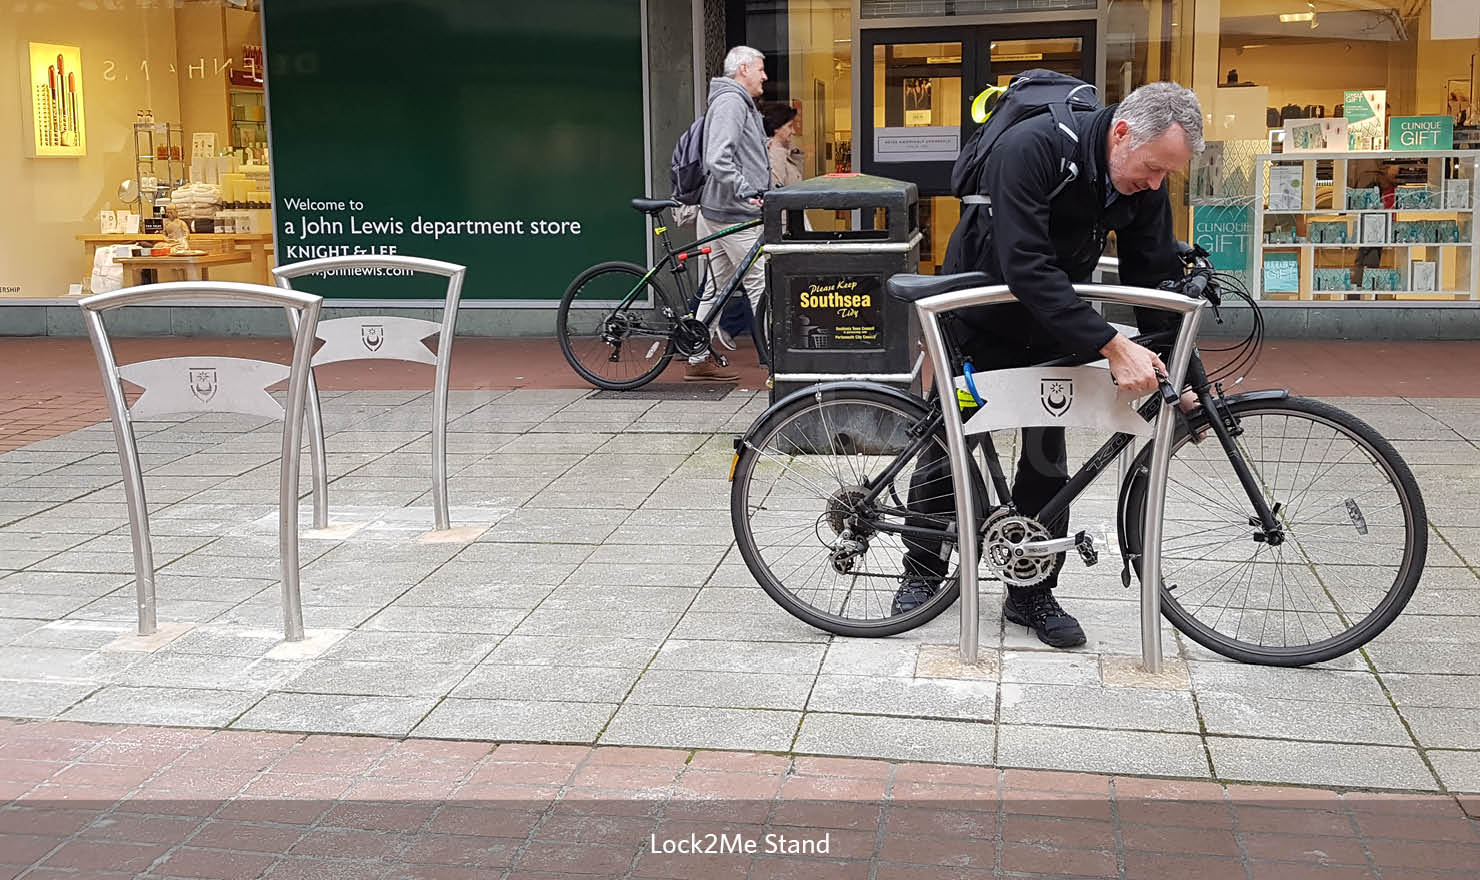 Lock to Me Cycle Stand